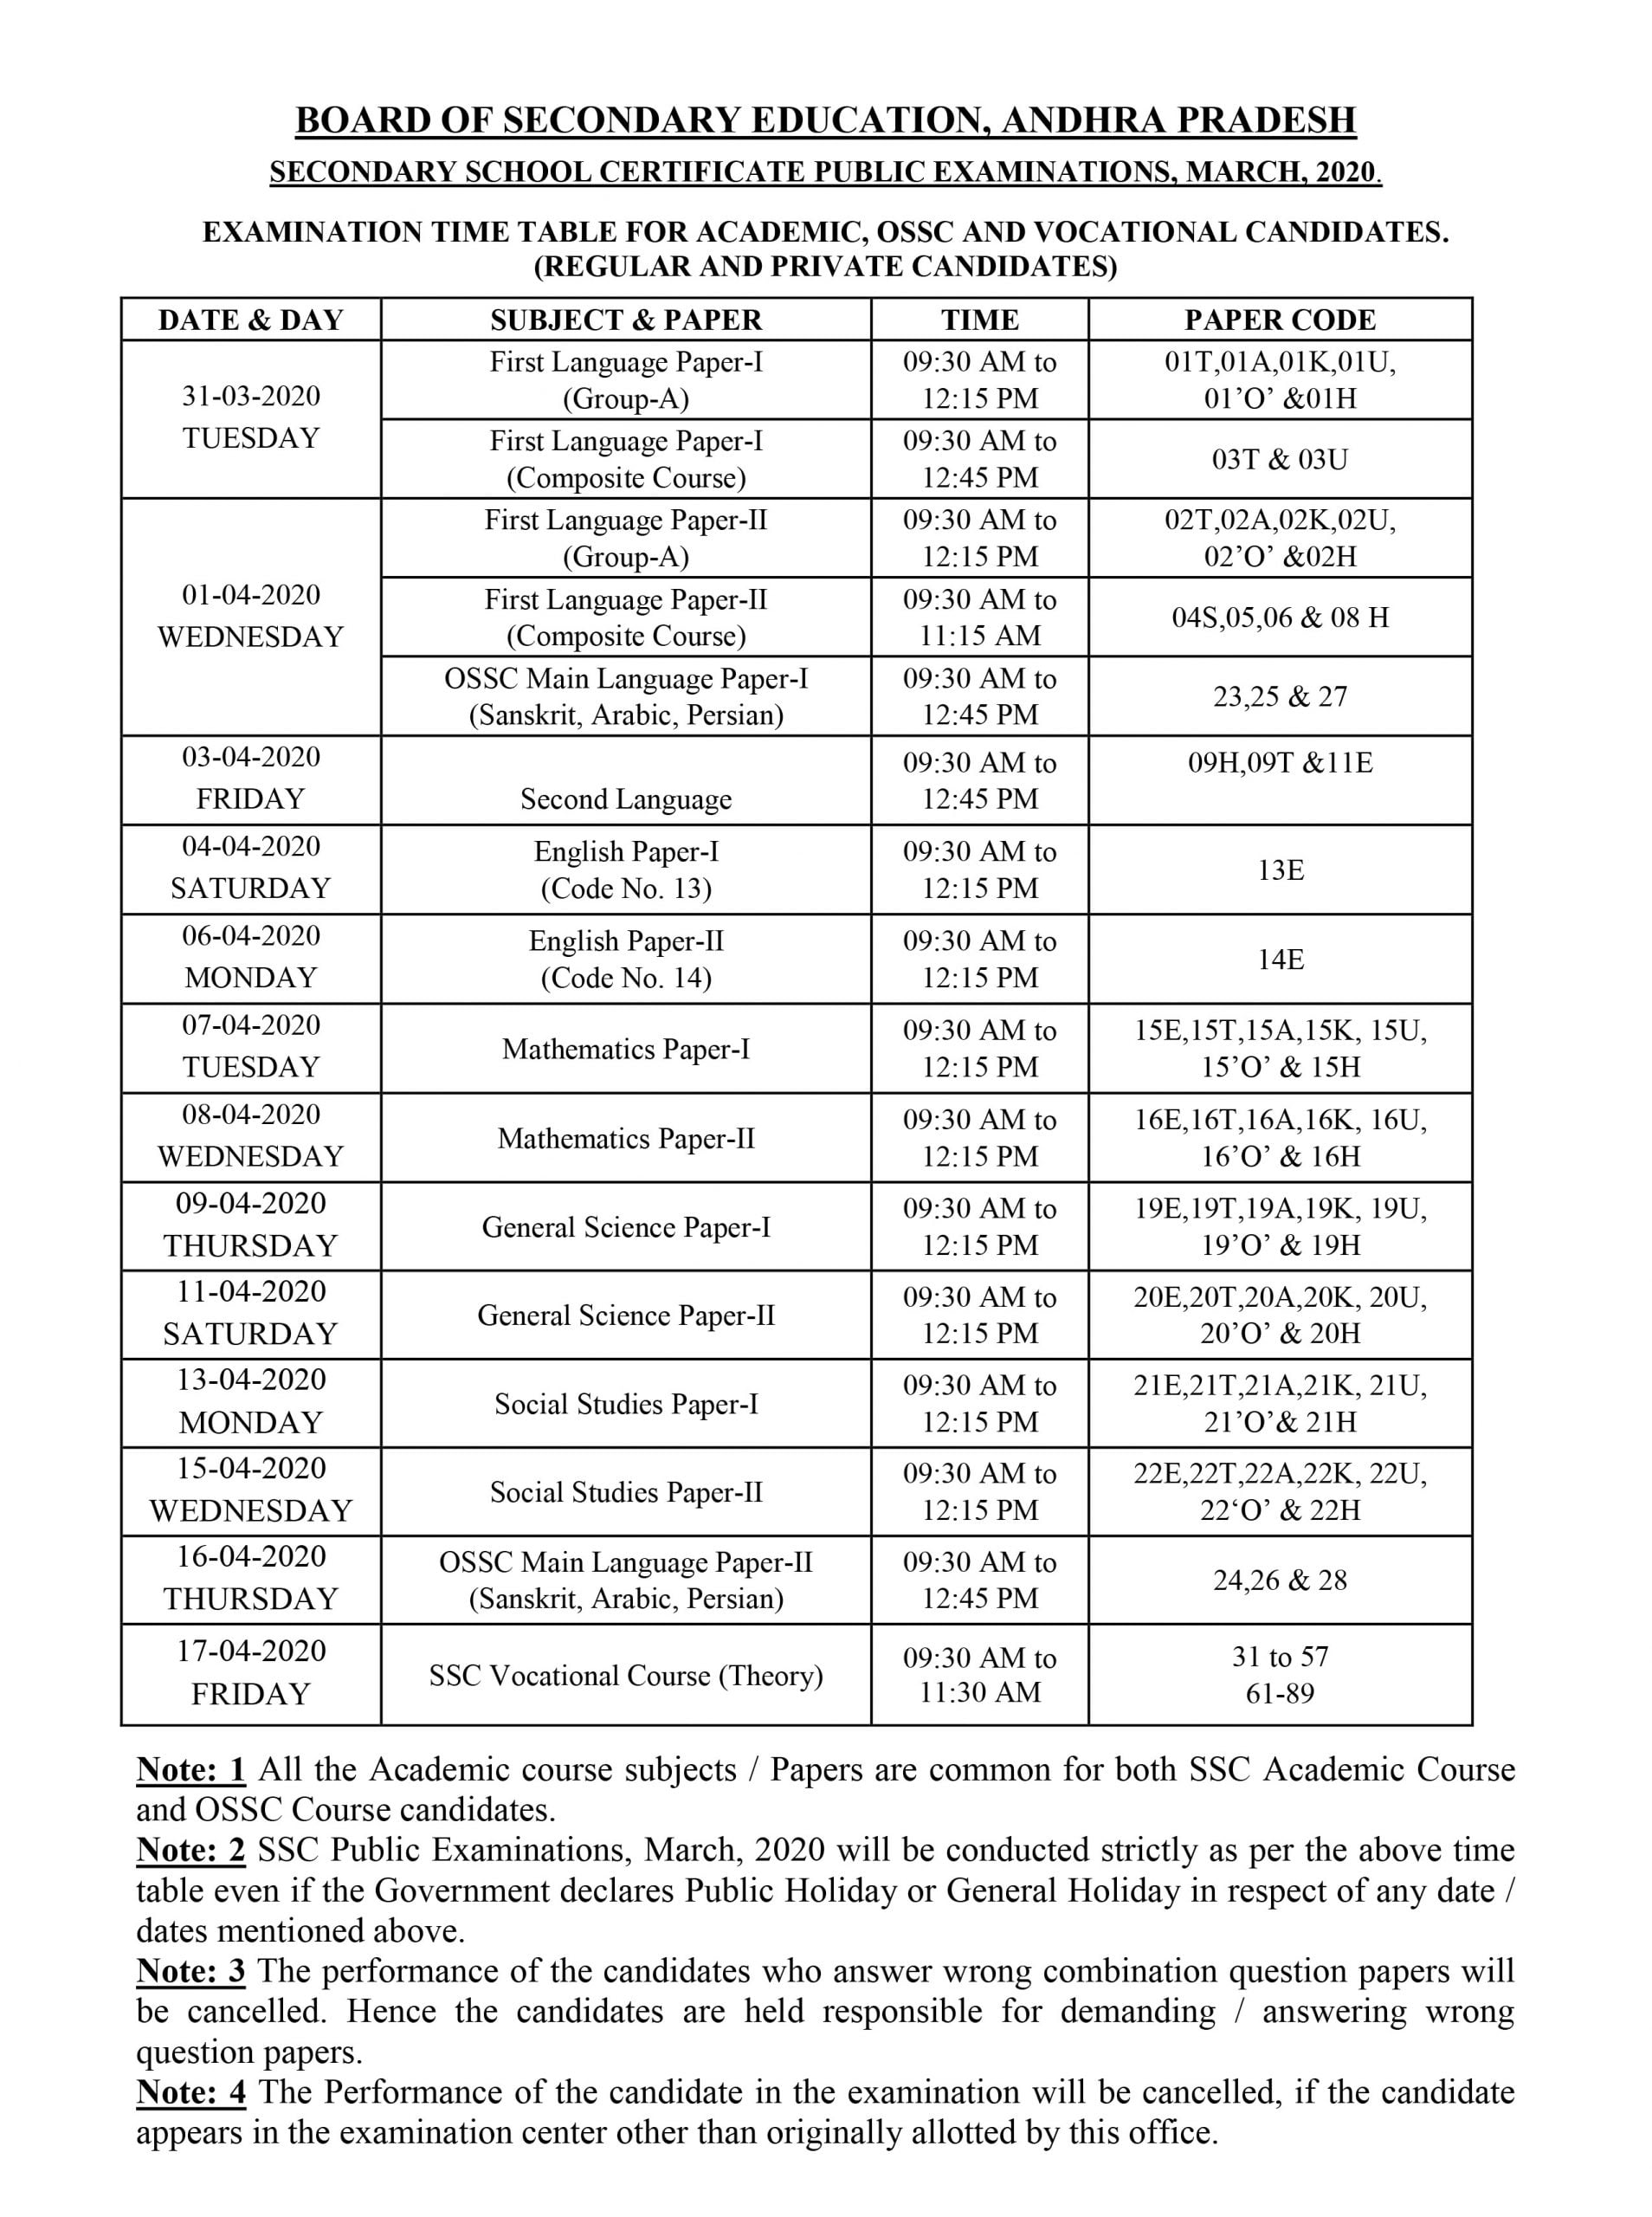 AP SSC Time Table 2020 Revised